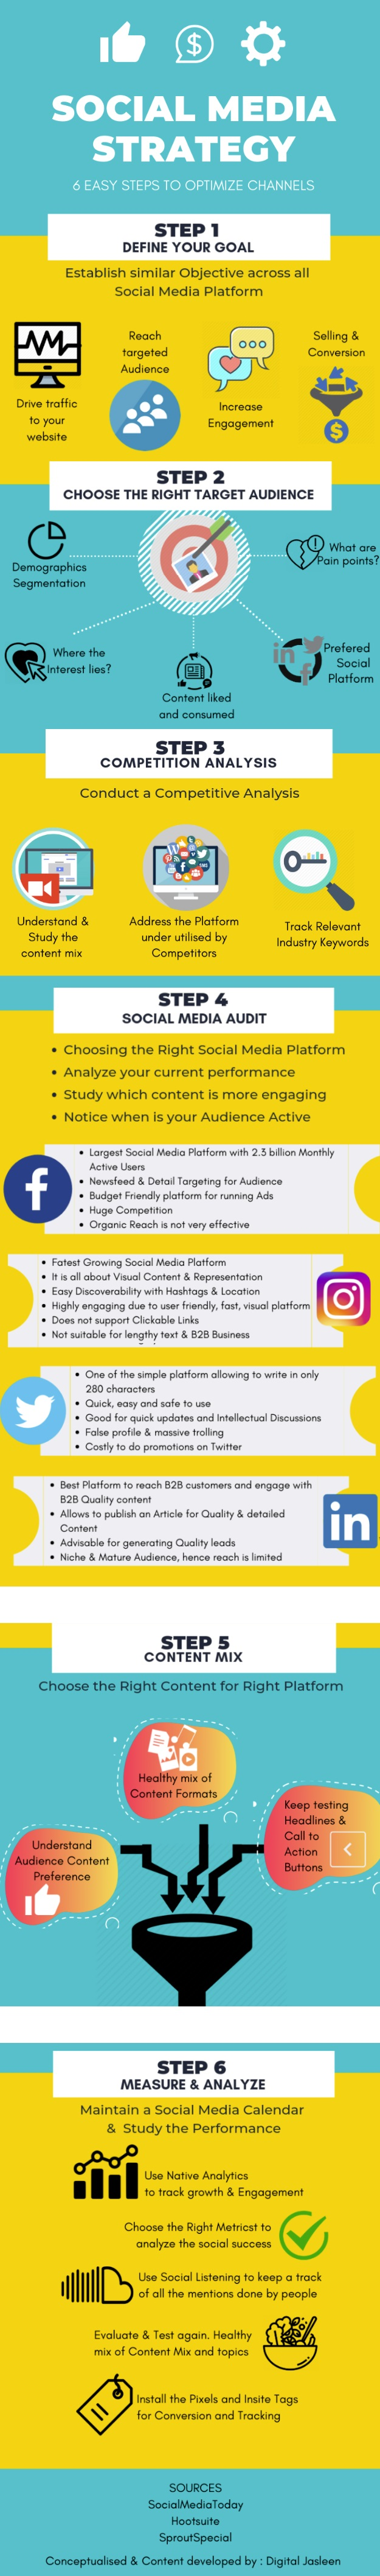 Infographic: A 6-Step Social Media Marketing Plan